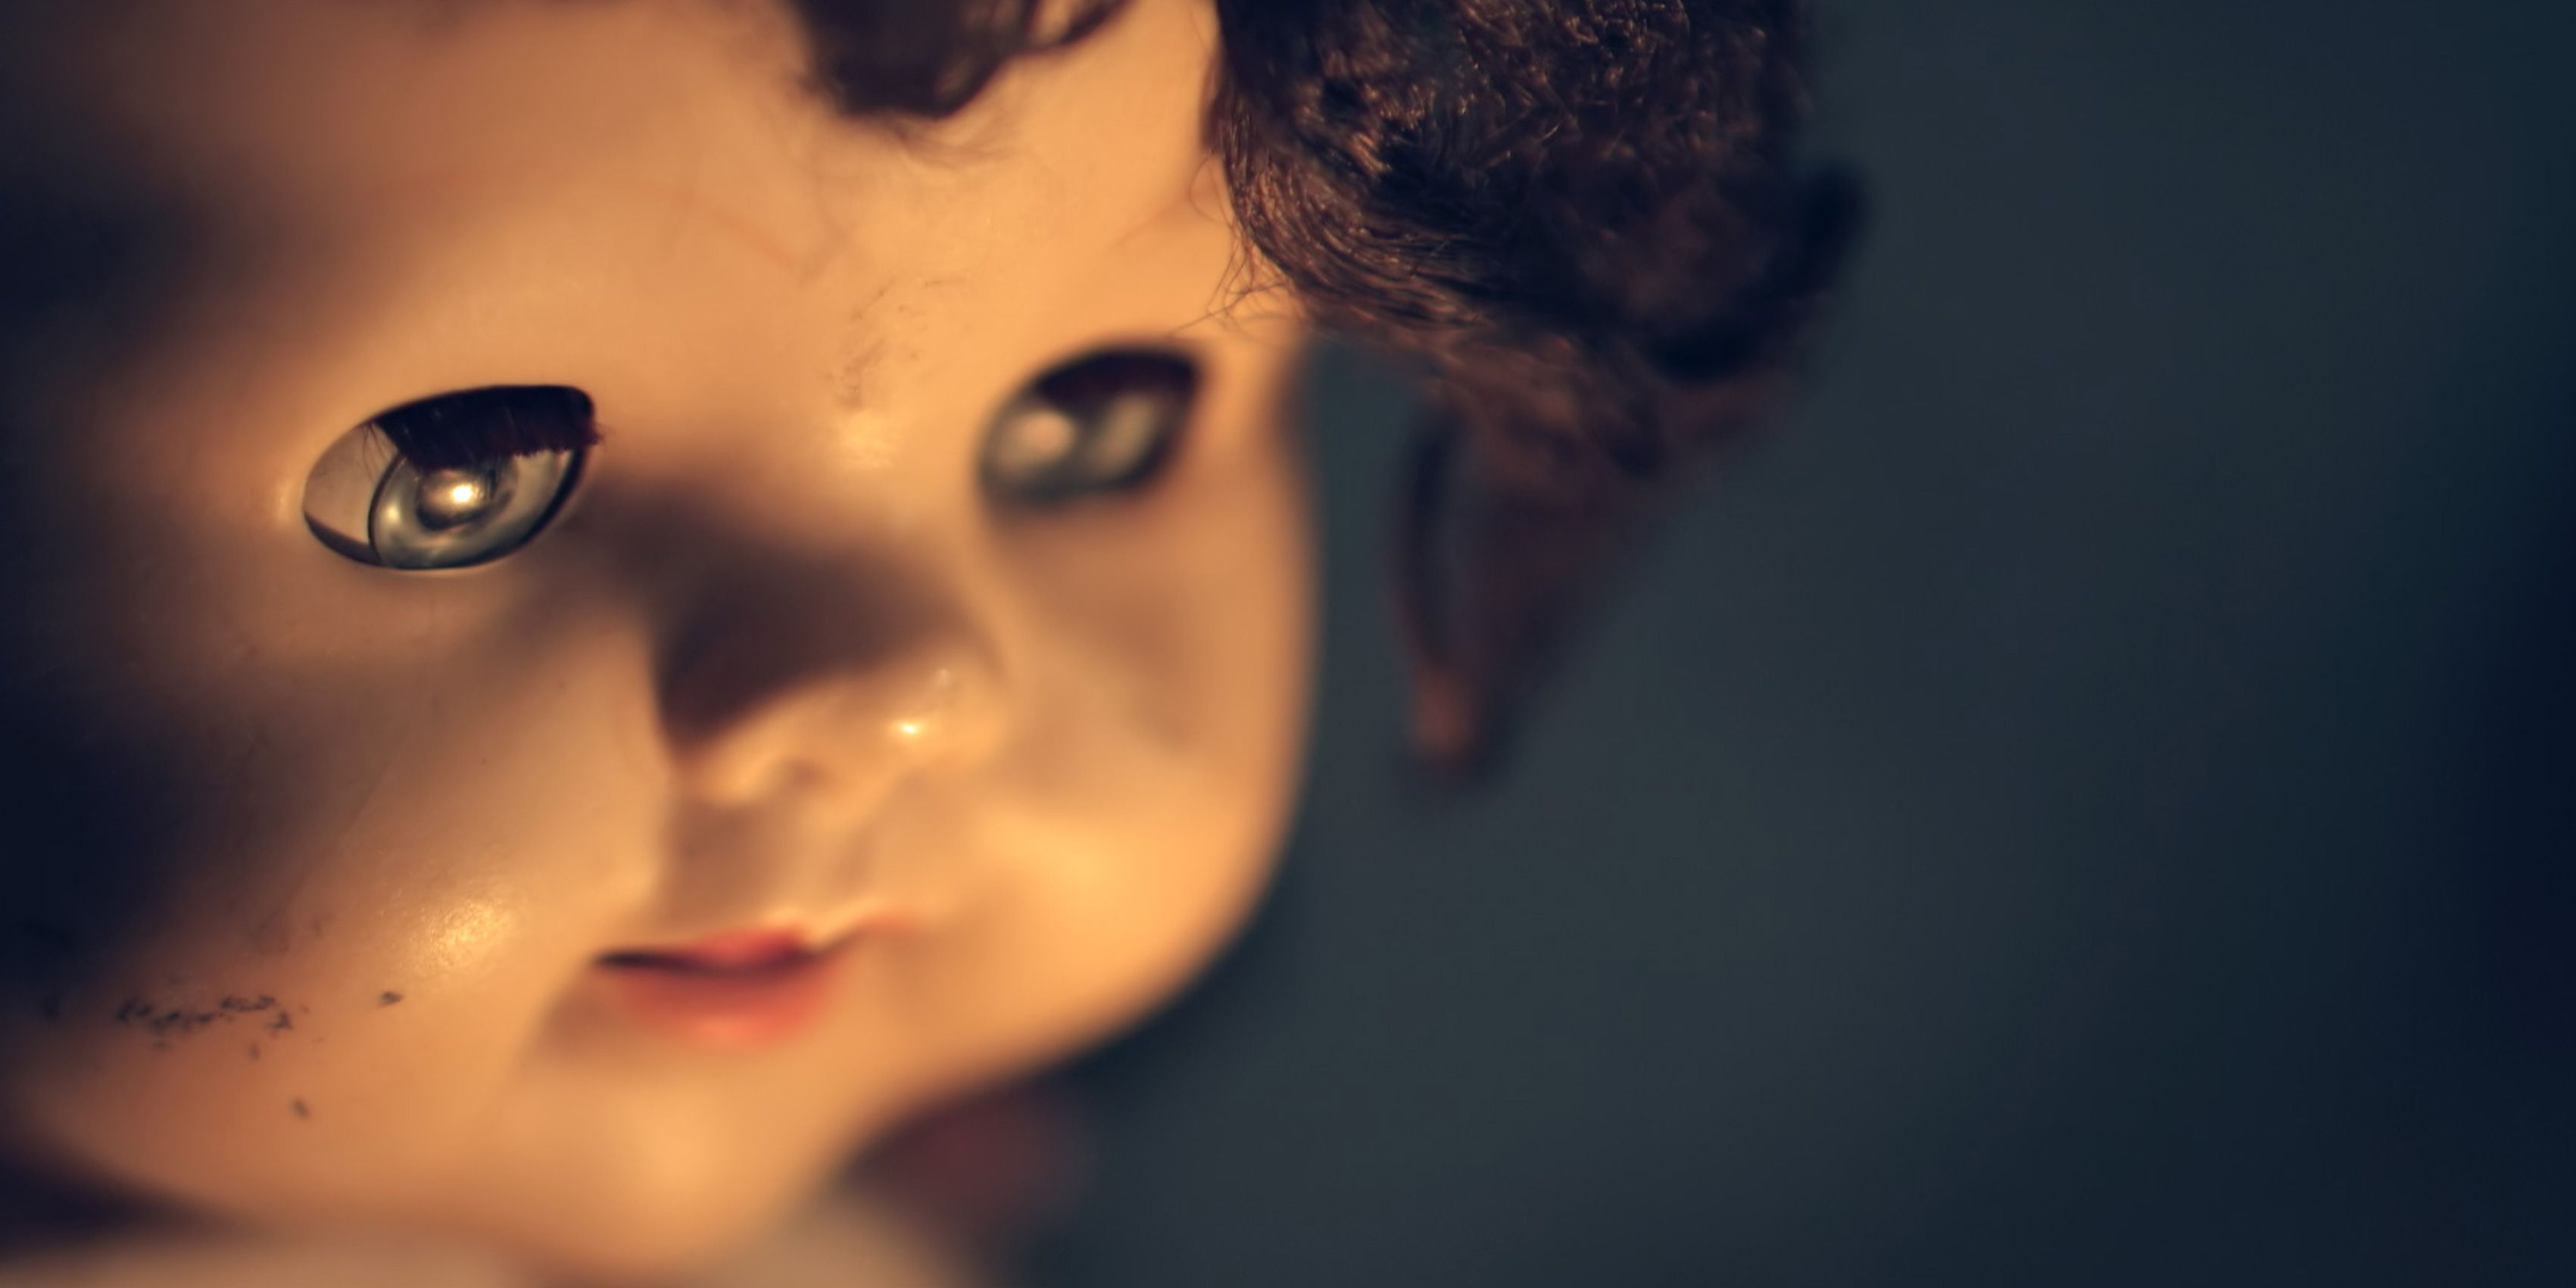 Keith Allott short film Dolls